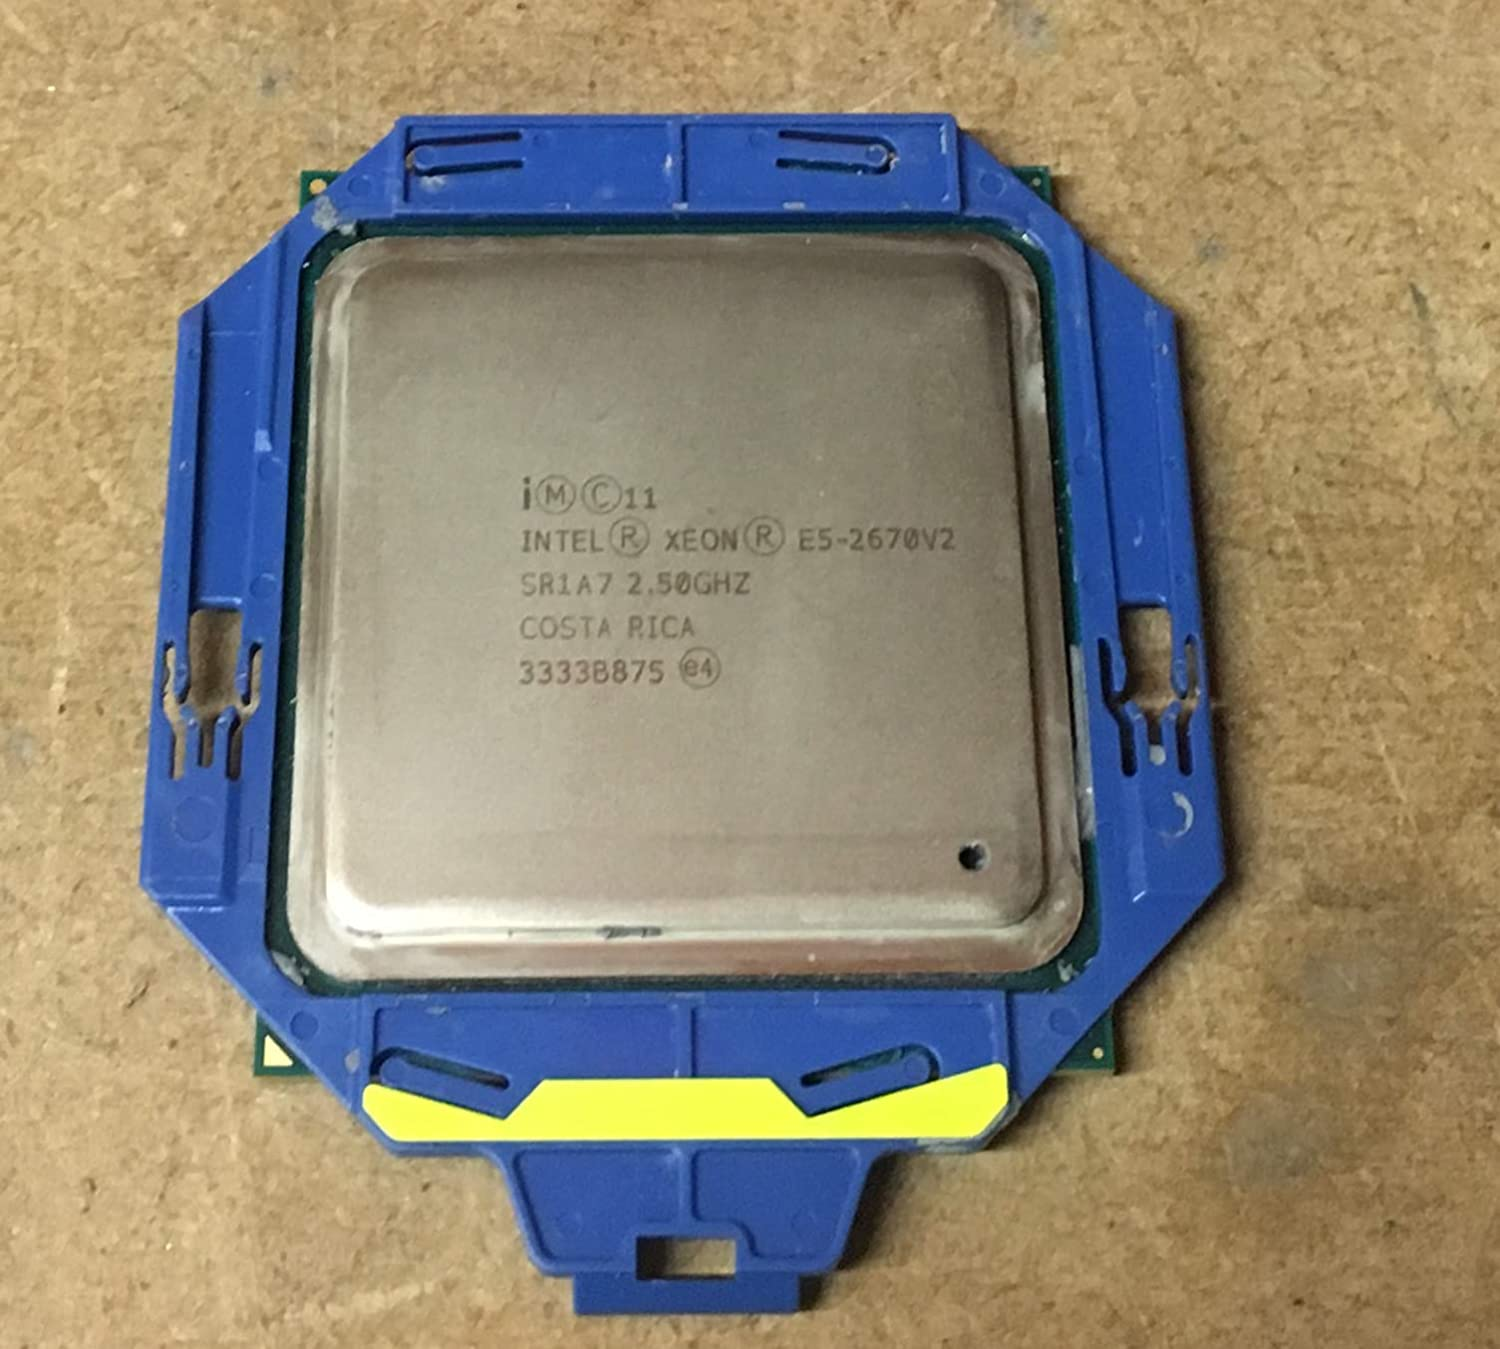 Intel Xeon E5-2670 V2 SR1A7 Ten Core 25M Cache 2.6GHz CPU Processor